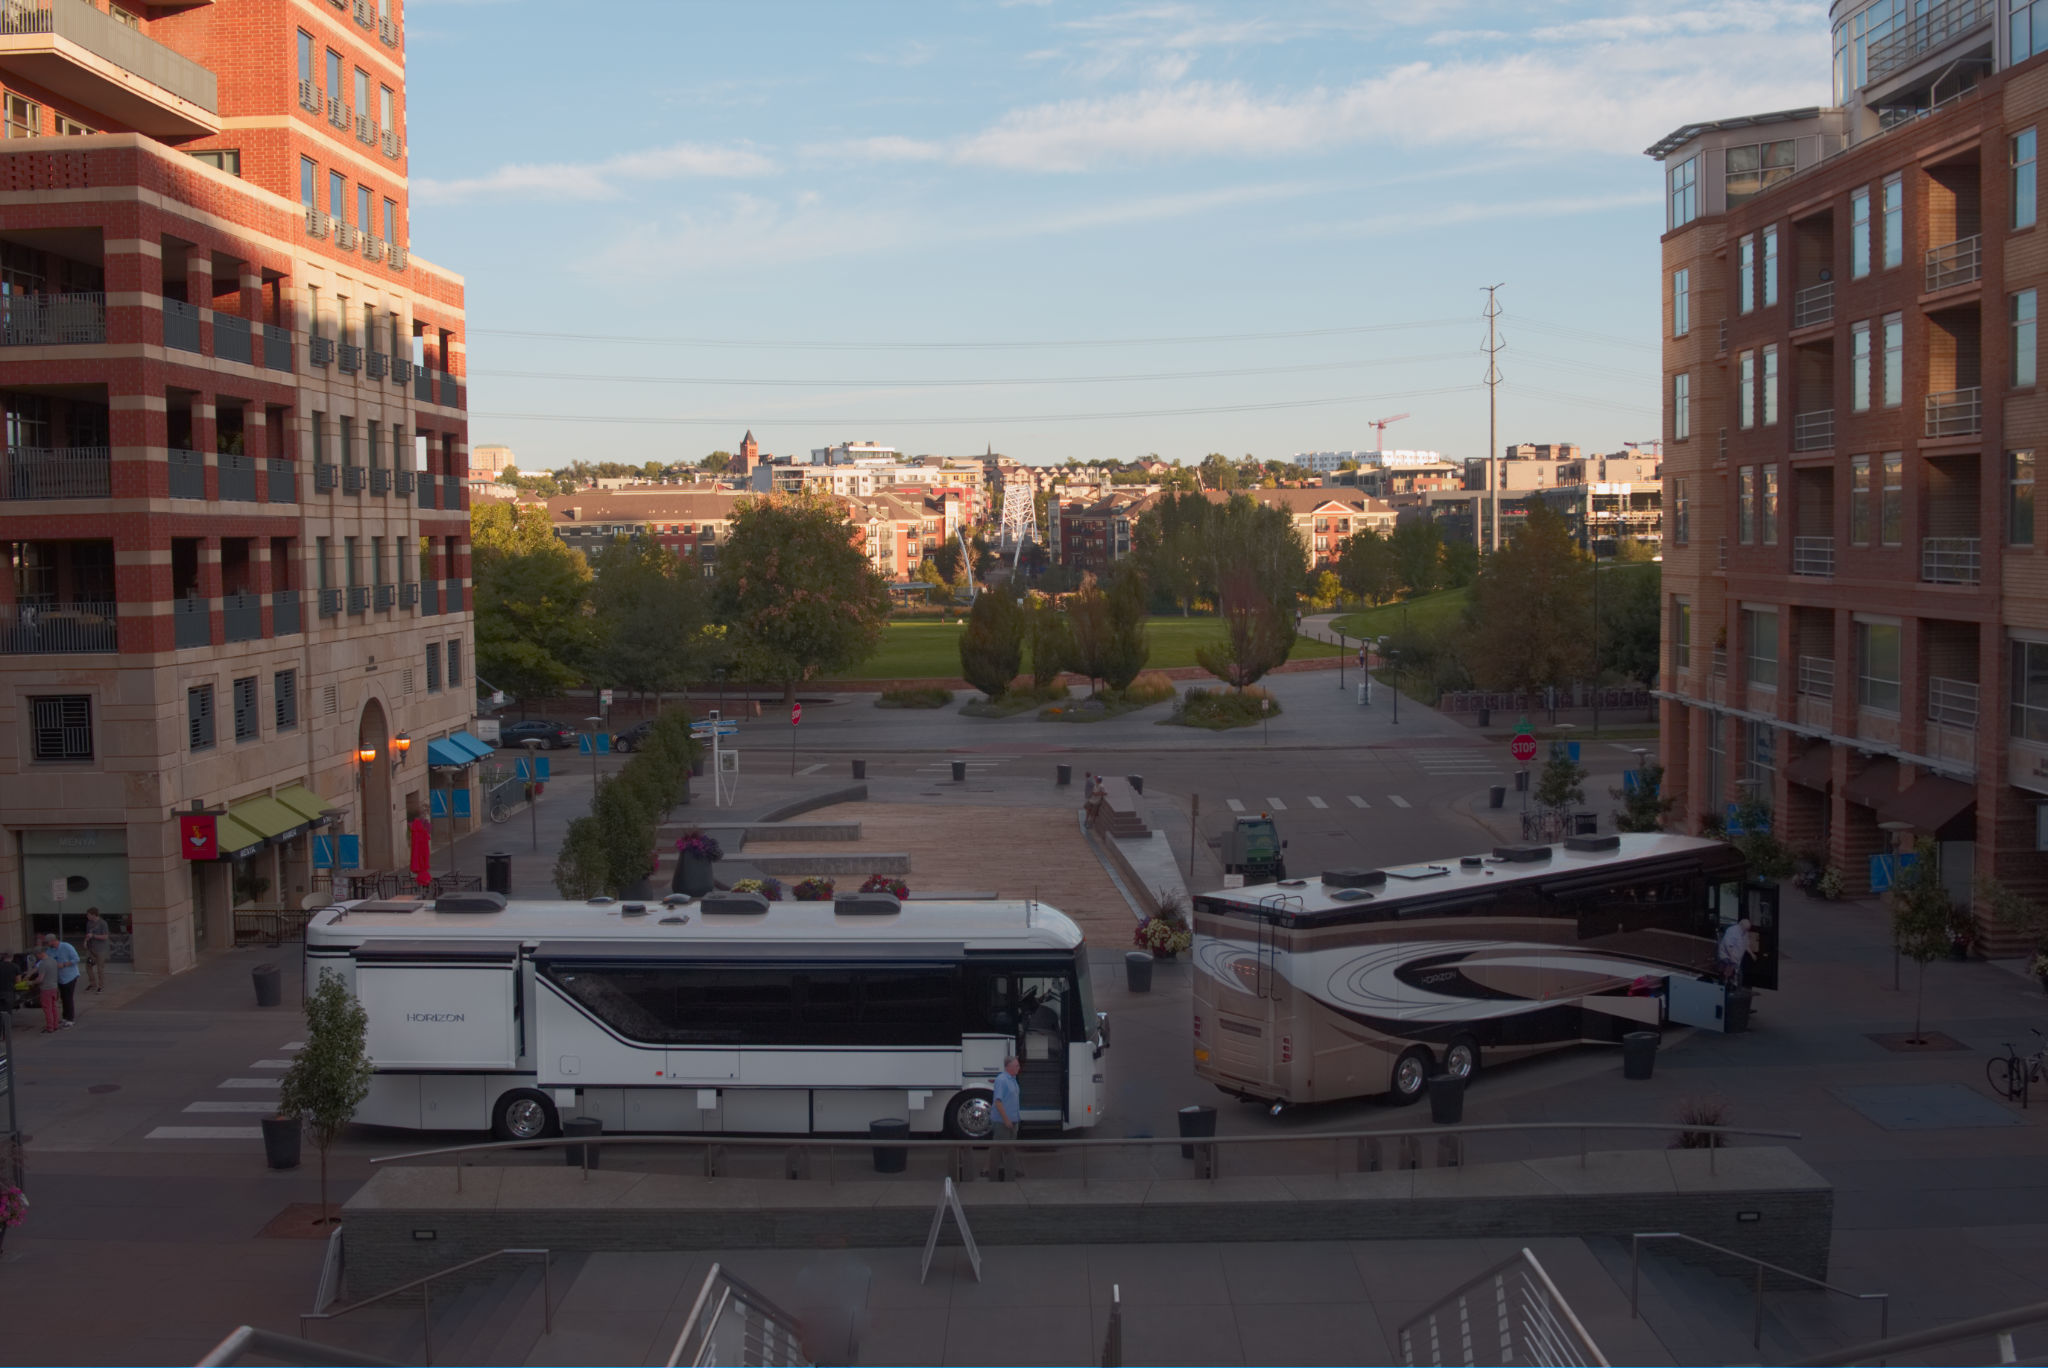 Two Winnebago Horizon motorhomes parked at a turn-around in downtown Denver.